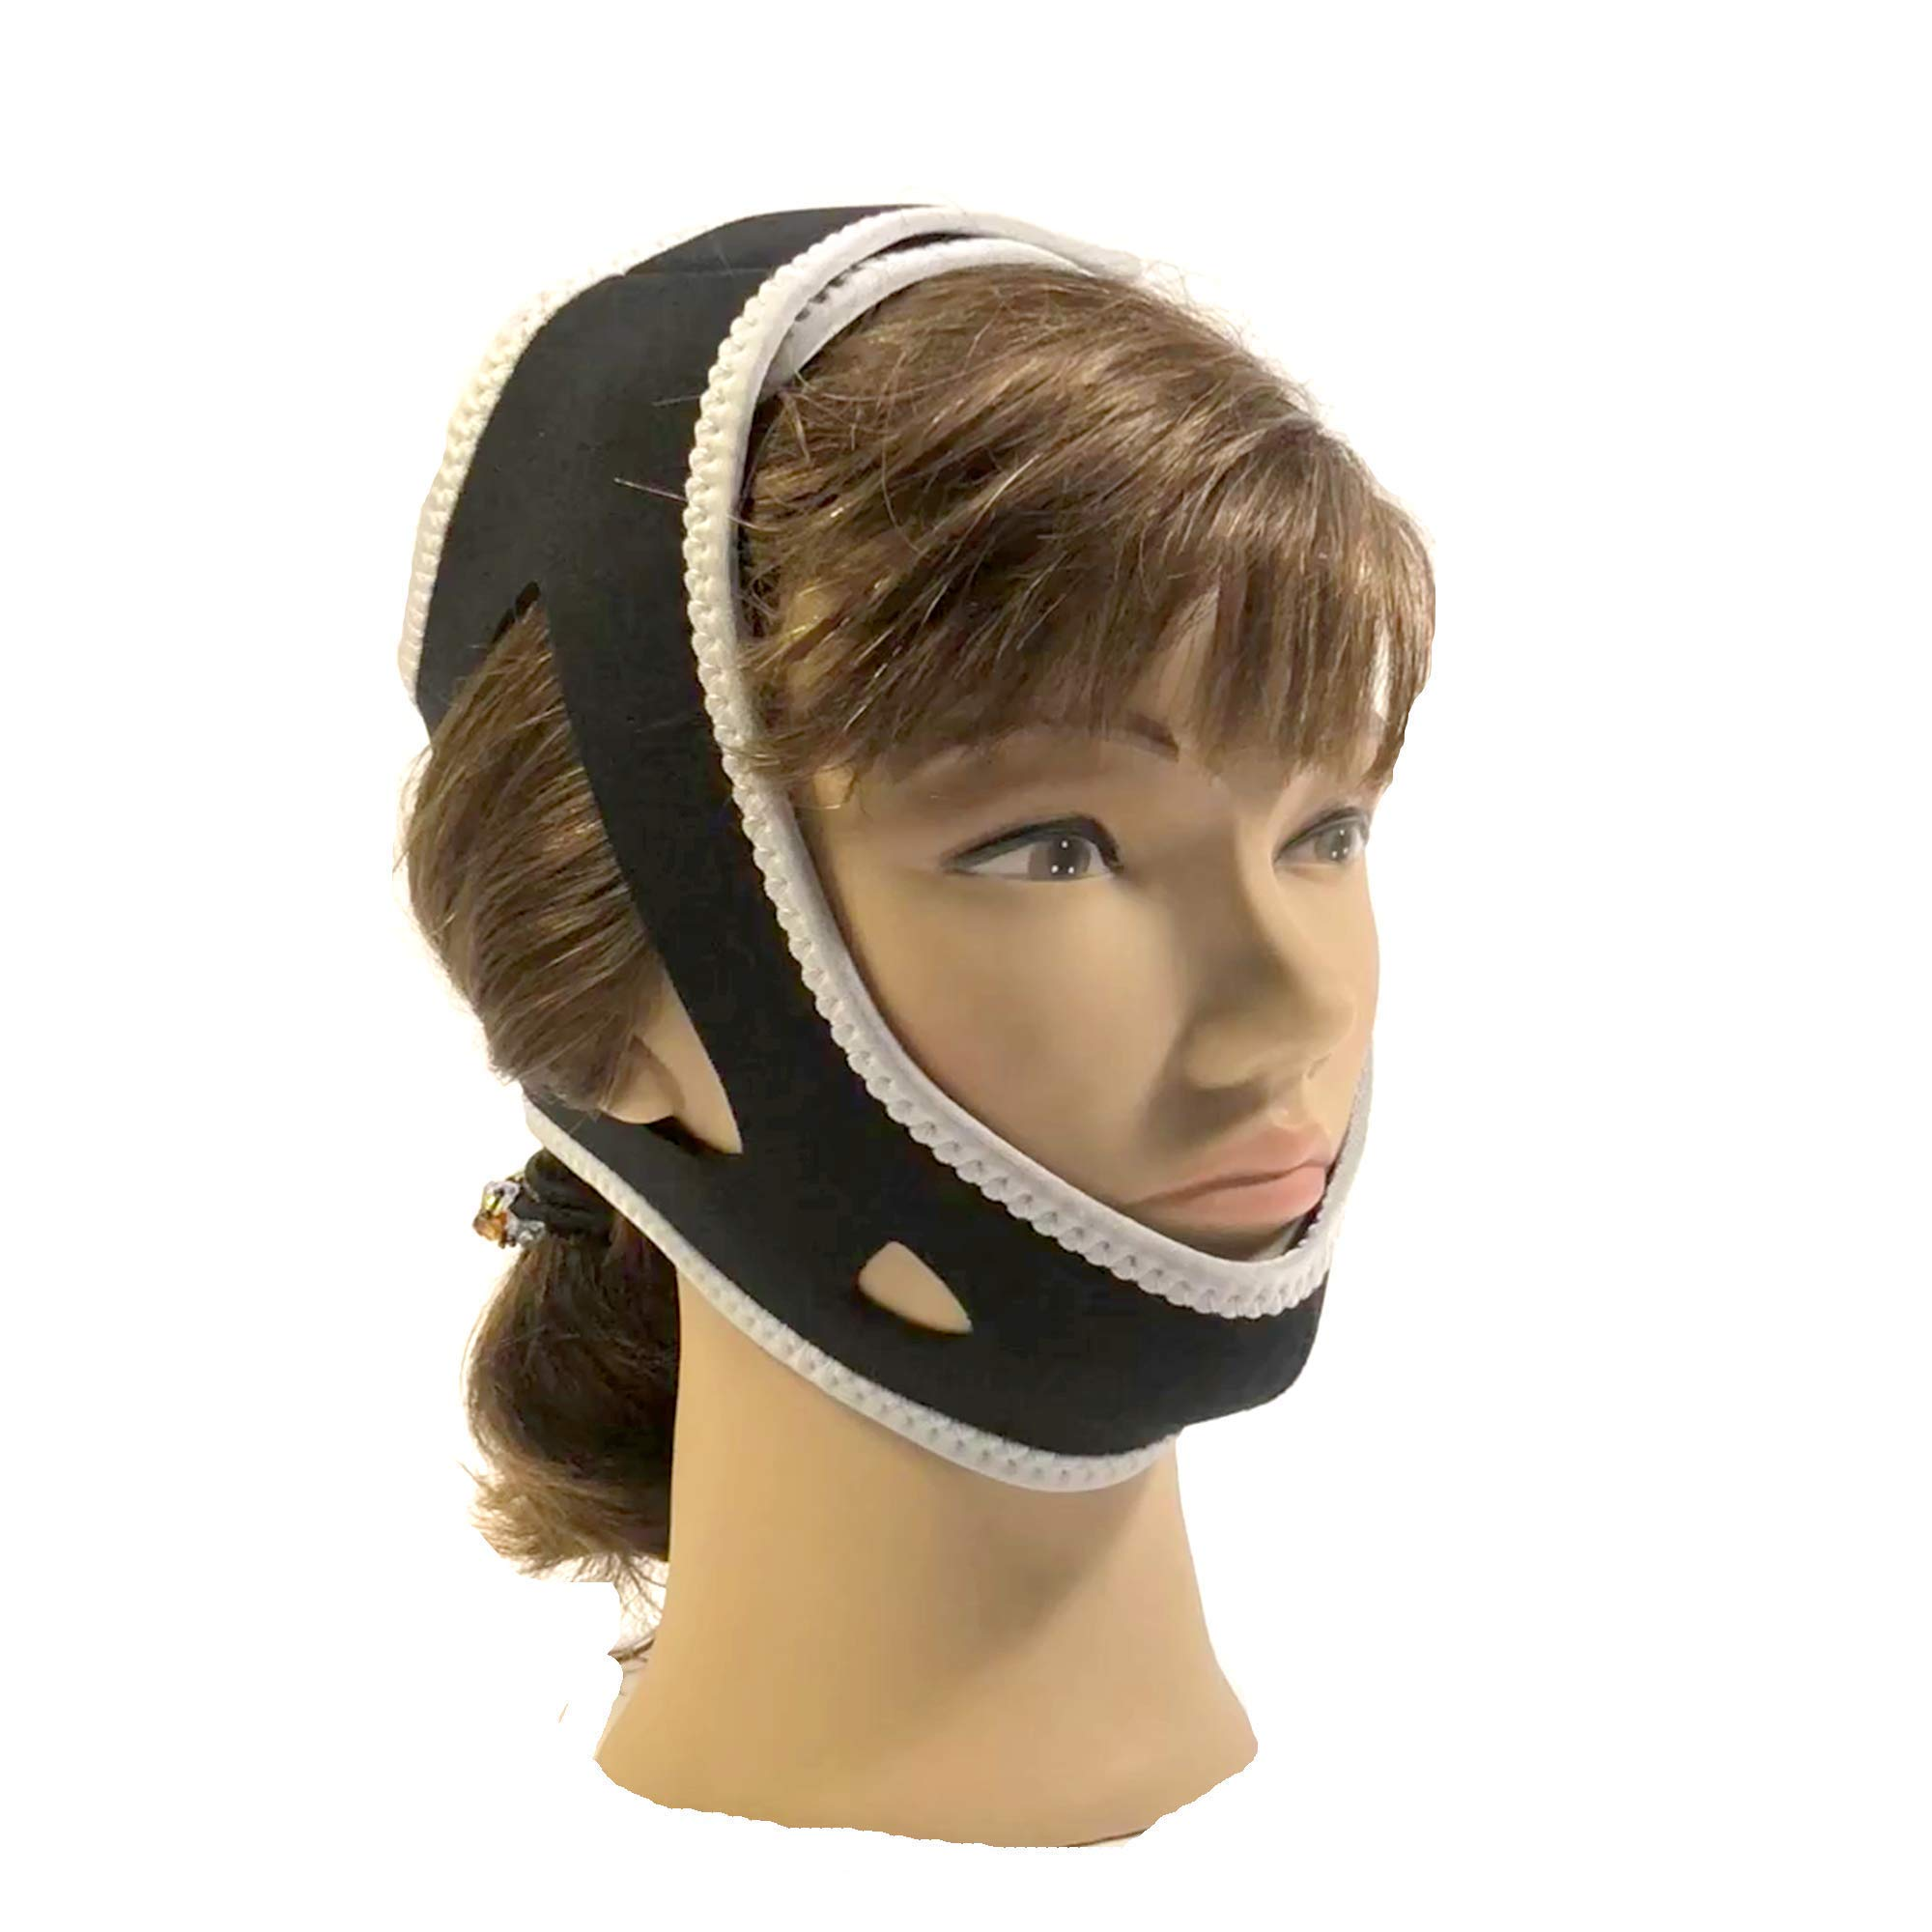 Anti-Snore Chin Strap - Stop Dry Mouth for CPAP Users - Deluxe Adjustable All Natural Snore Stopper Solution Aid for Men and Women - Aids Sleep - Snore Relief Chin Straps by Boundary Life